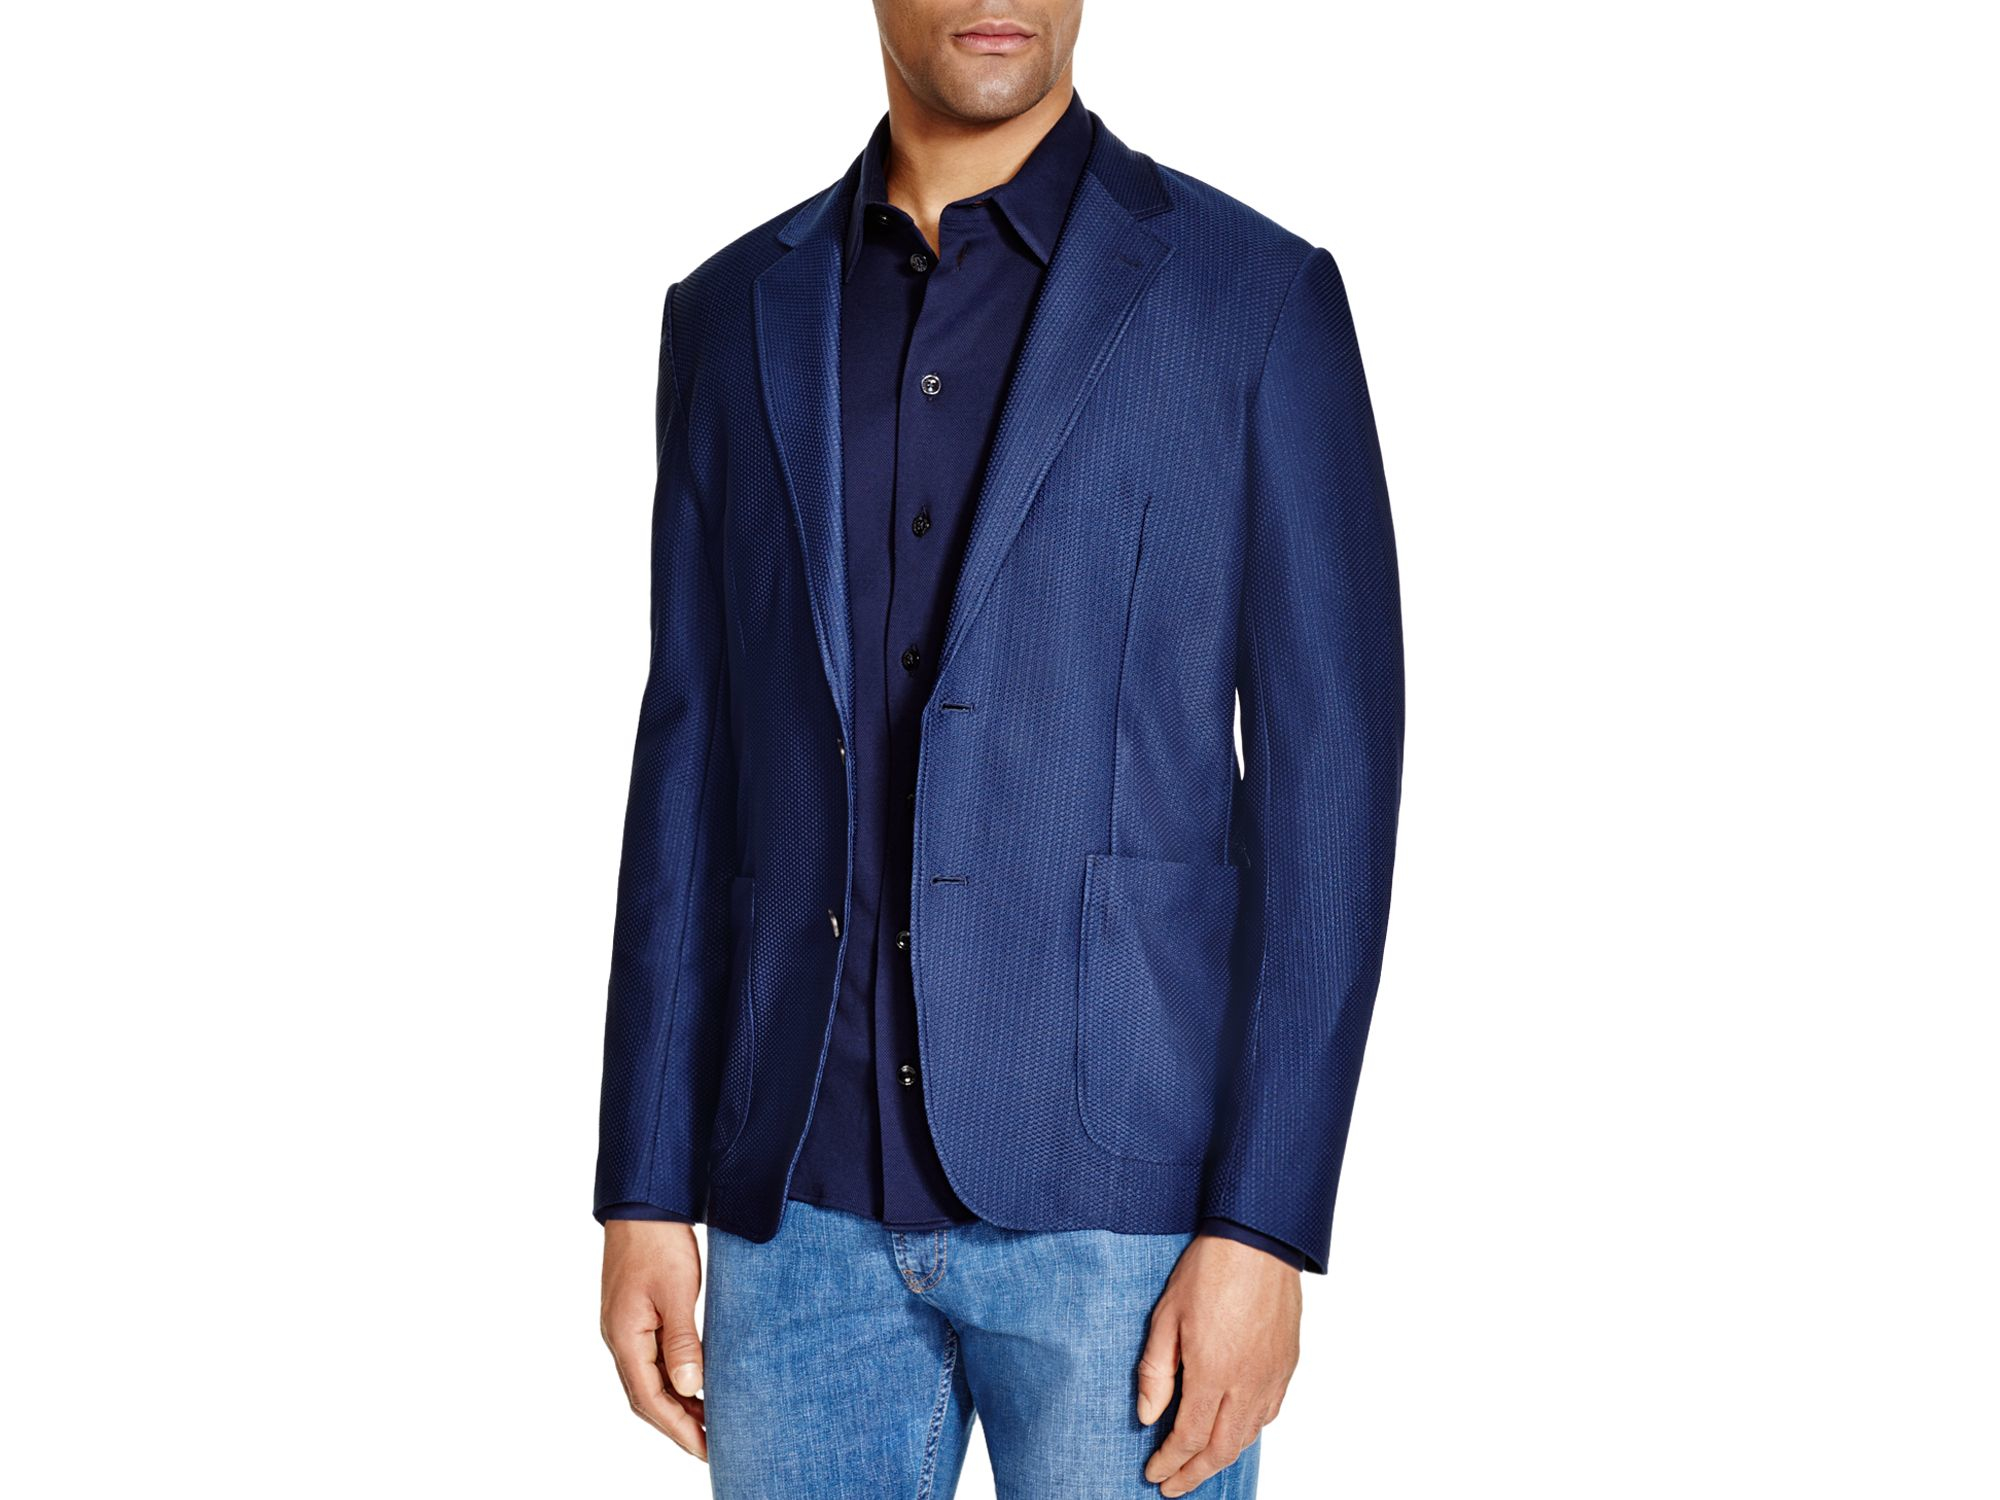 Slim fit jackets are cut closer to the body and fitted more to the client's silhouette. While not restrictive, slim fit is more narrow and has a tighter fit in the arms, waist and chest area in the jacket and in the thigh and waist area in the pants. Tends to look great on .